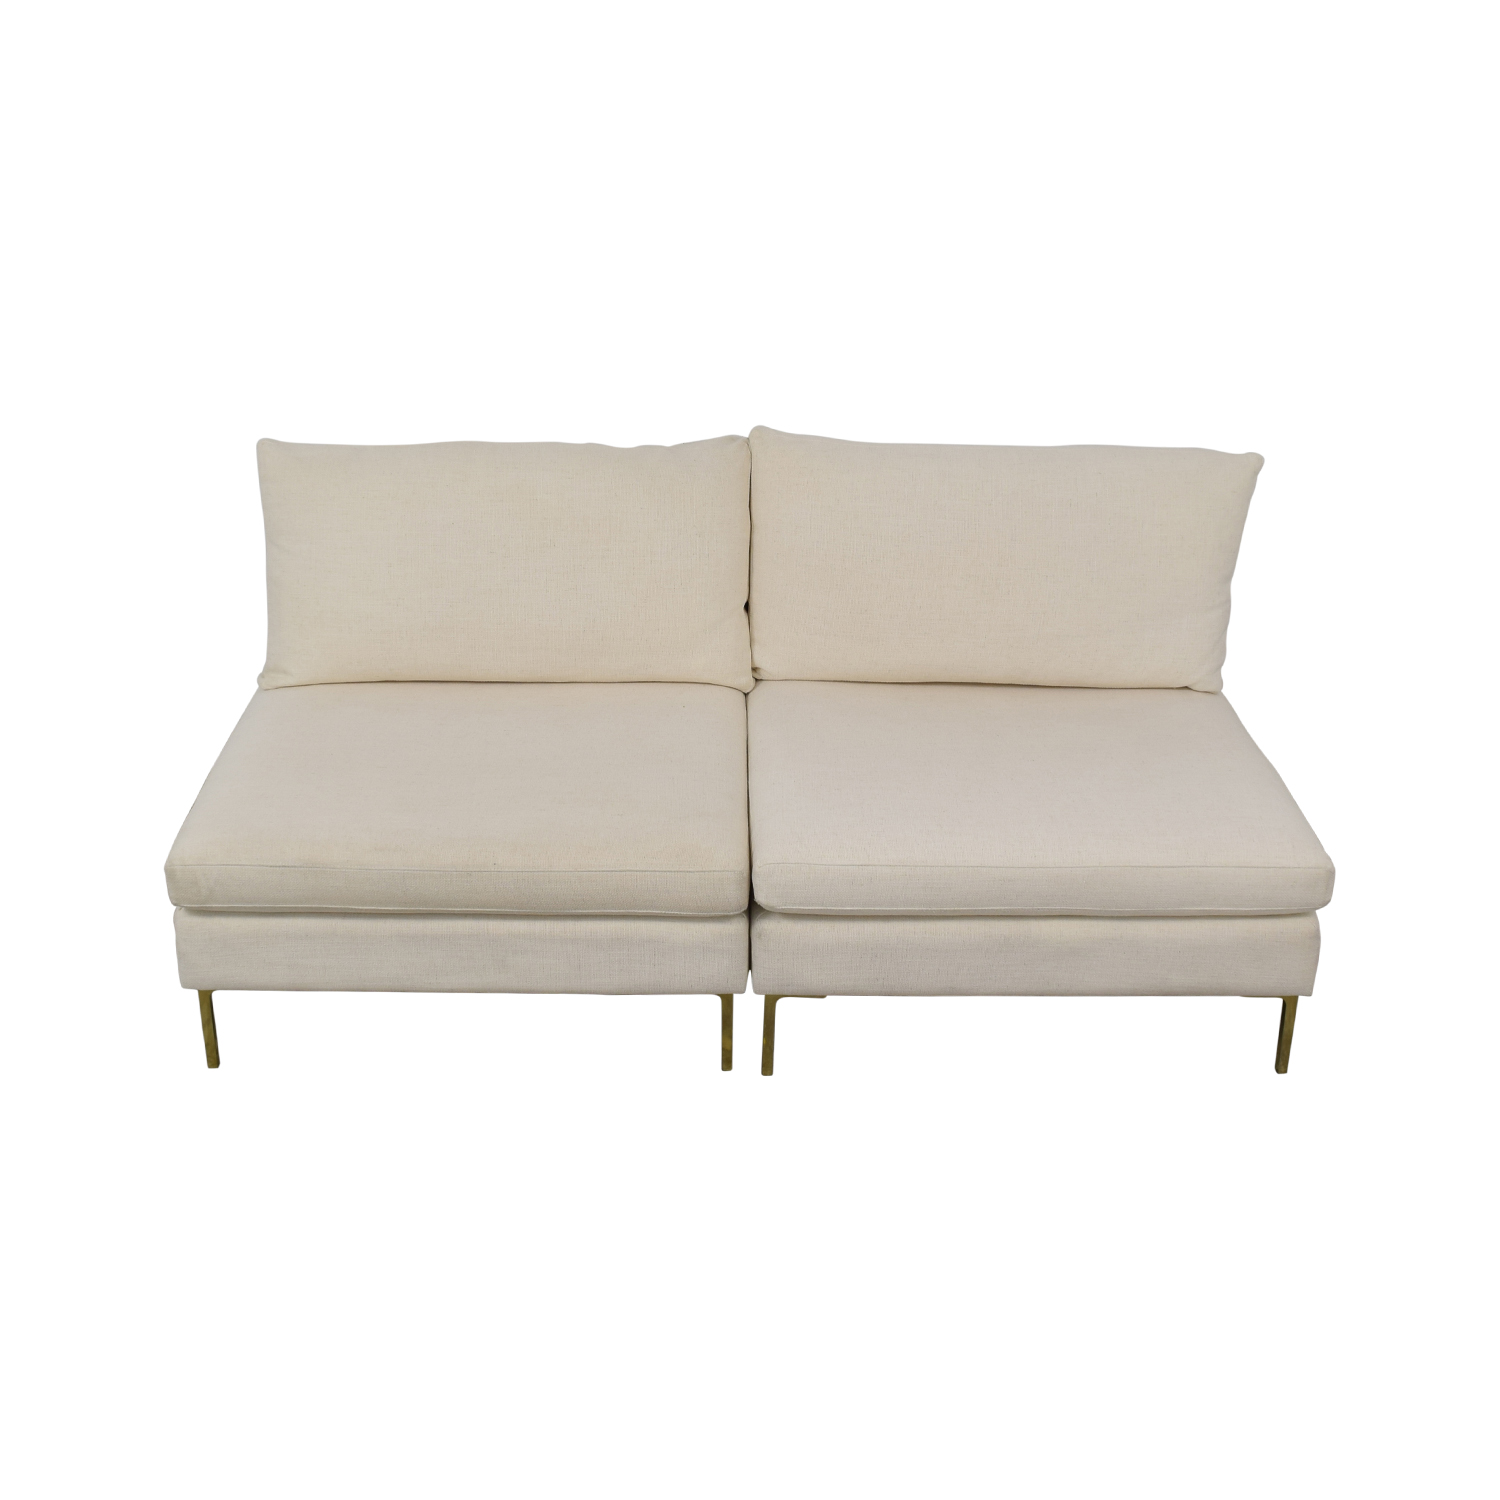 shop Anthropologie Anthropologie Armless Sofa online